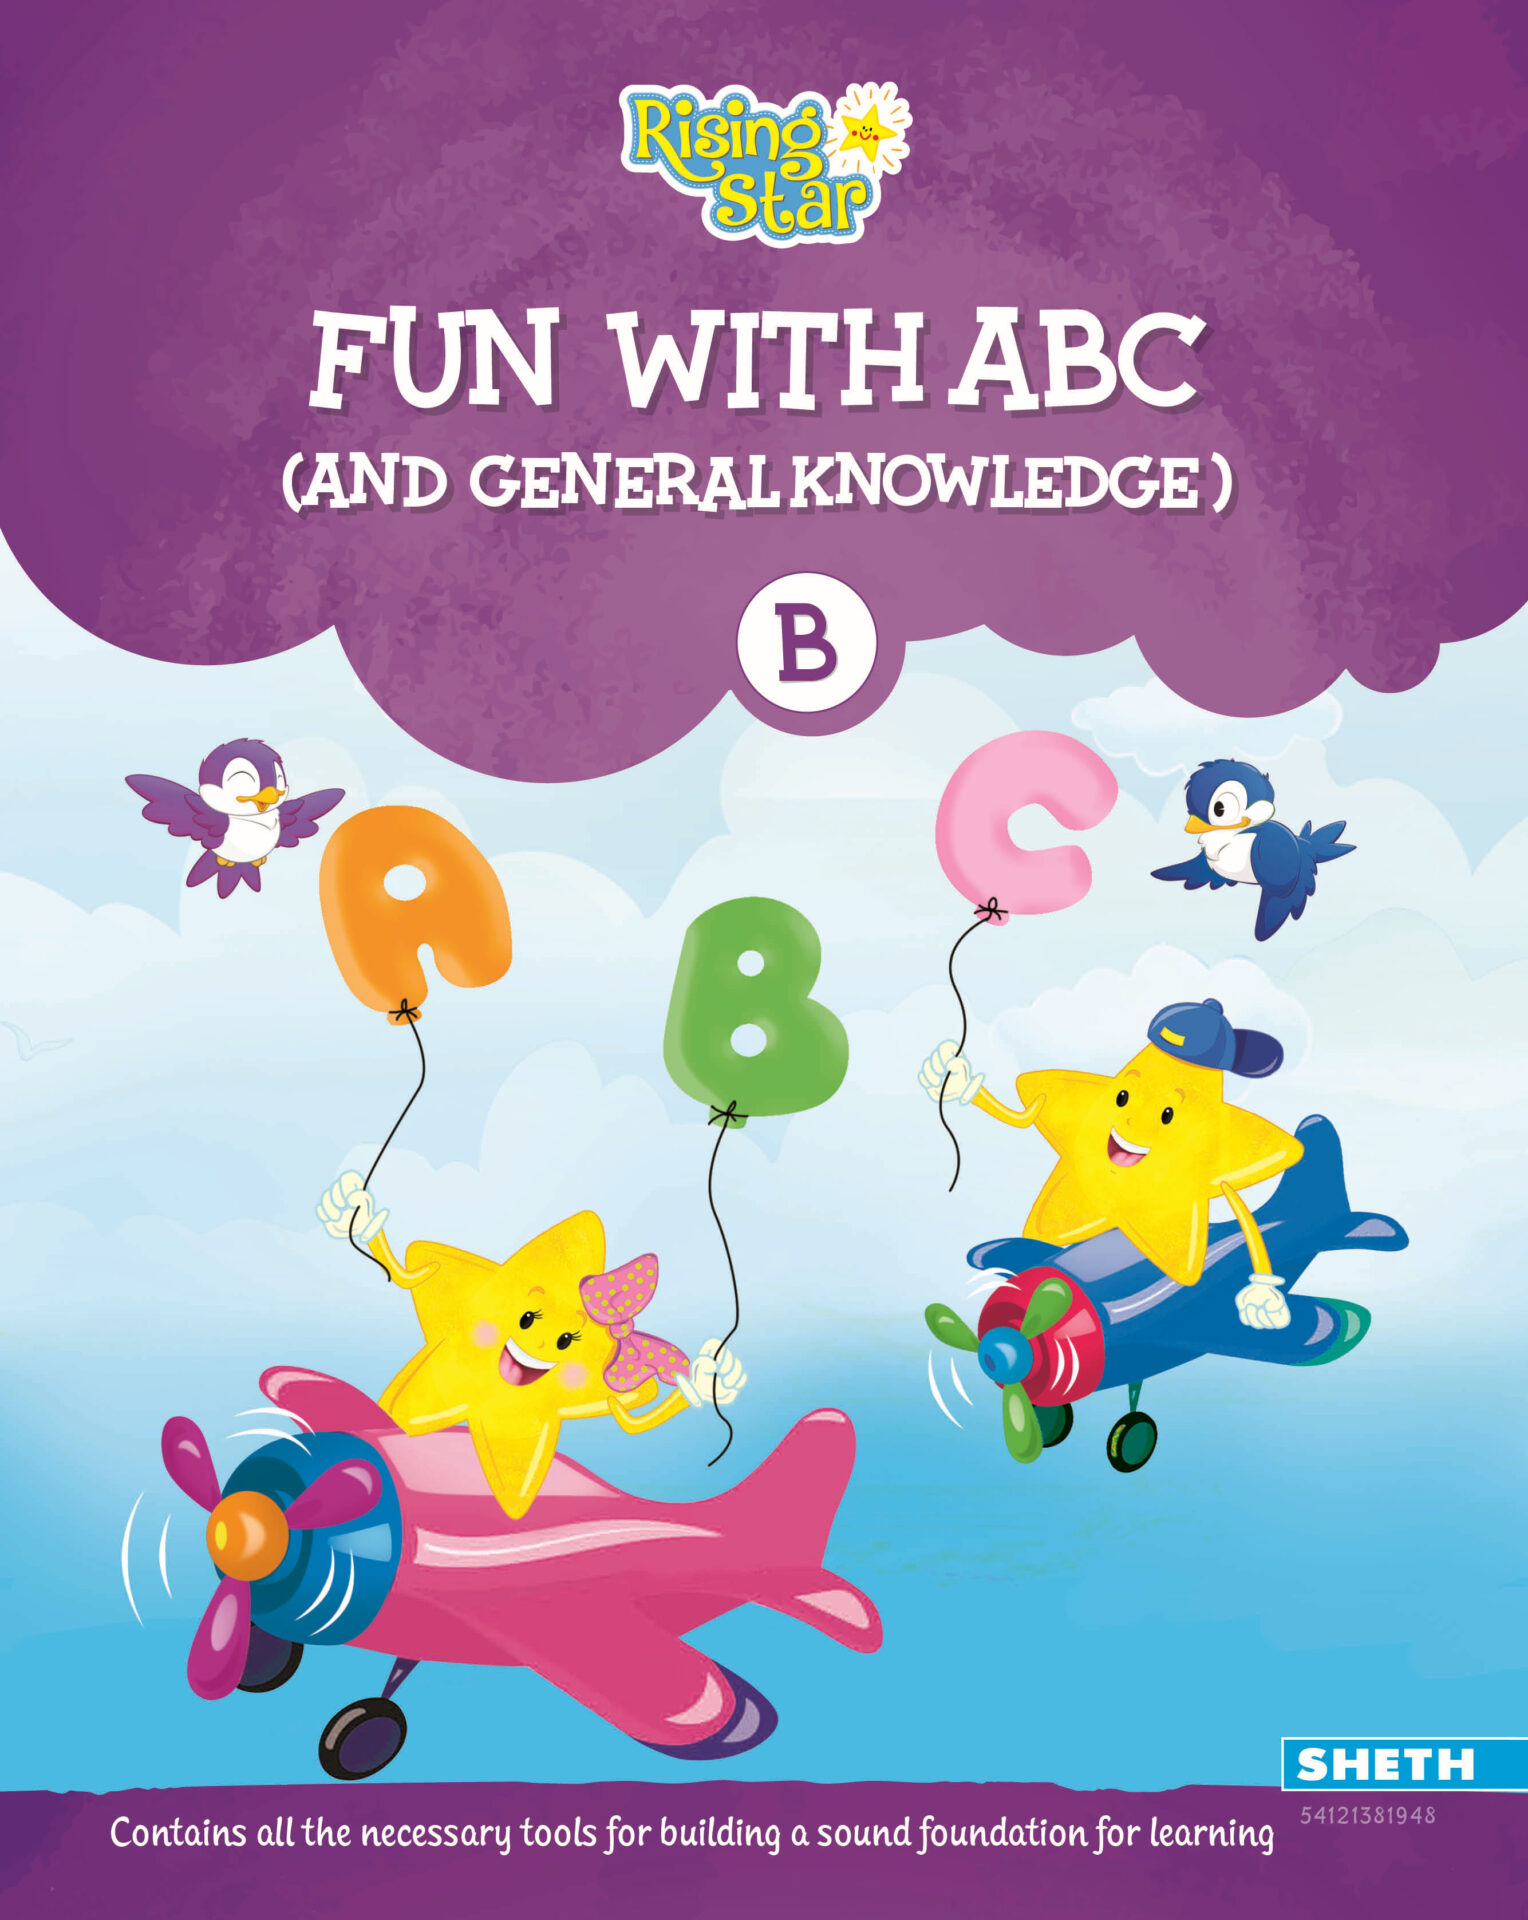 Rising Star Fun with ABC and General Knowledge B 1